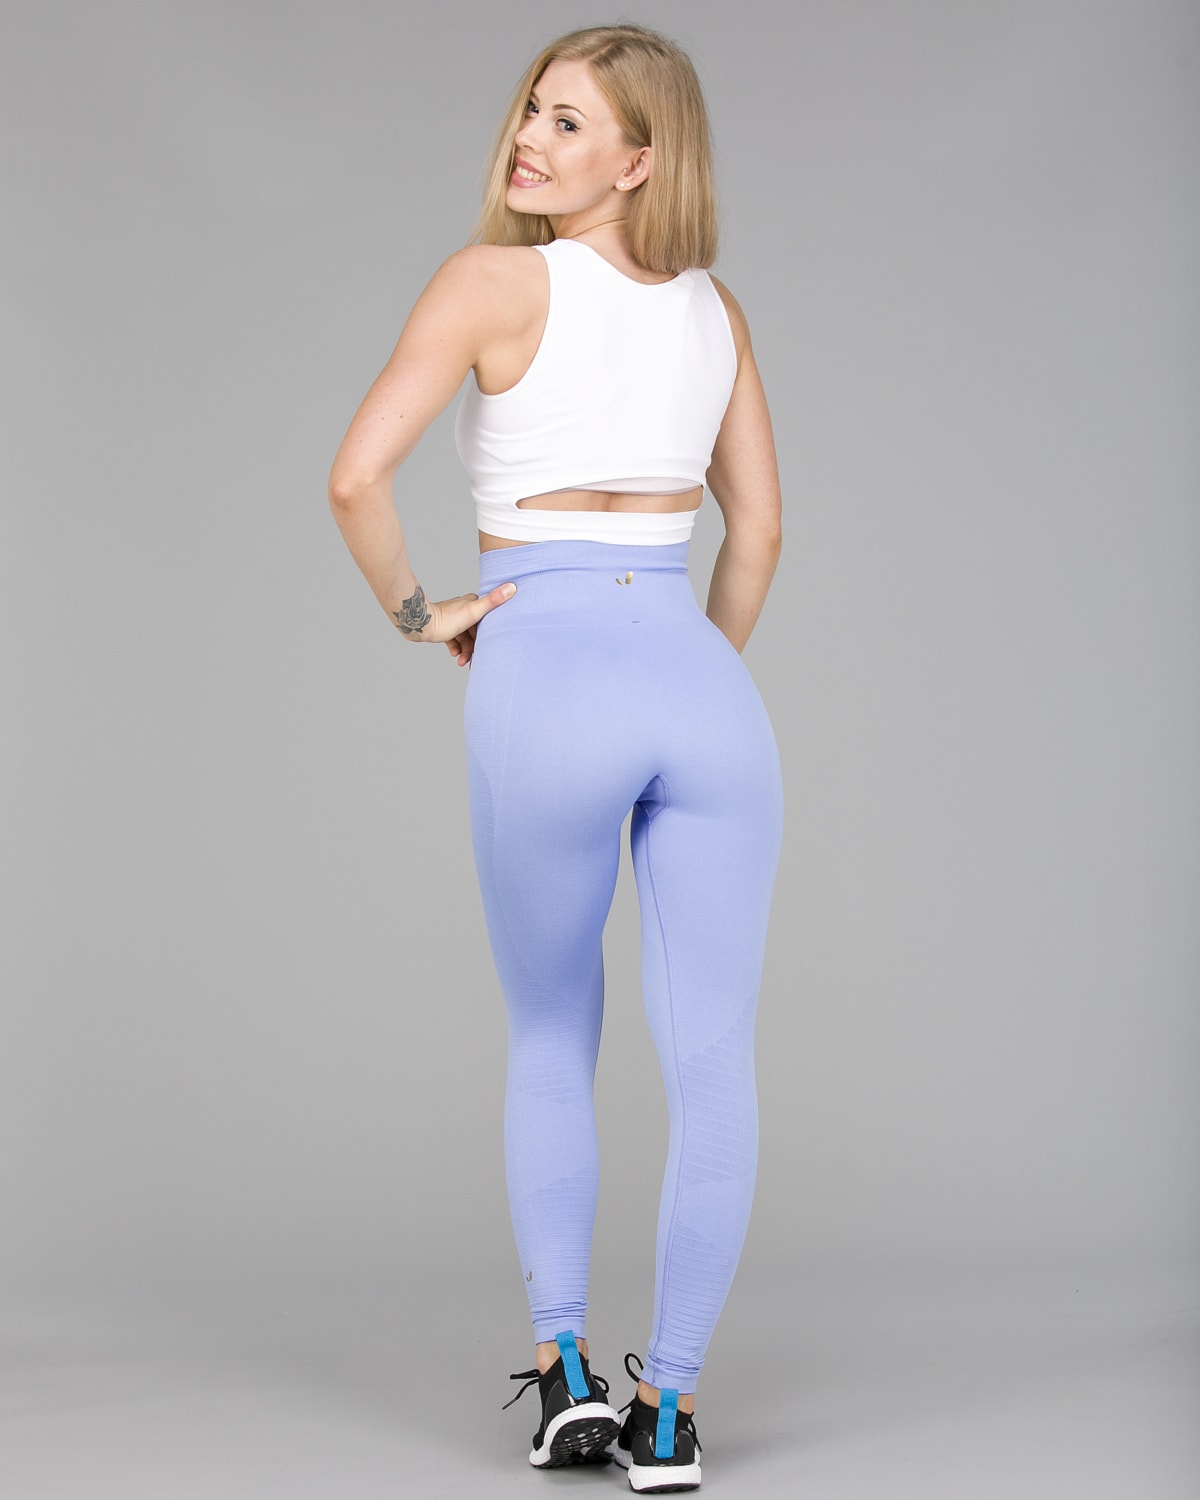 Jerf Gela 2.0 Tights Blue Pastel6